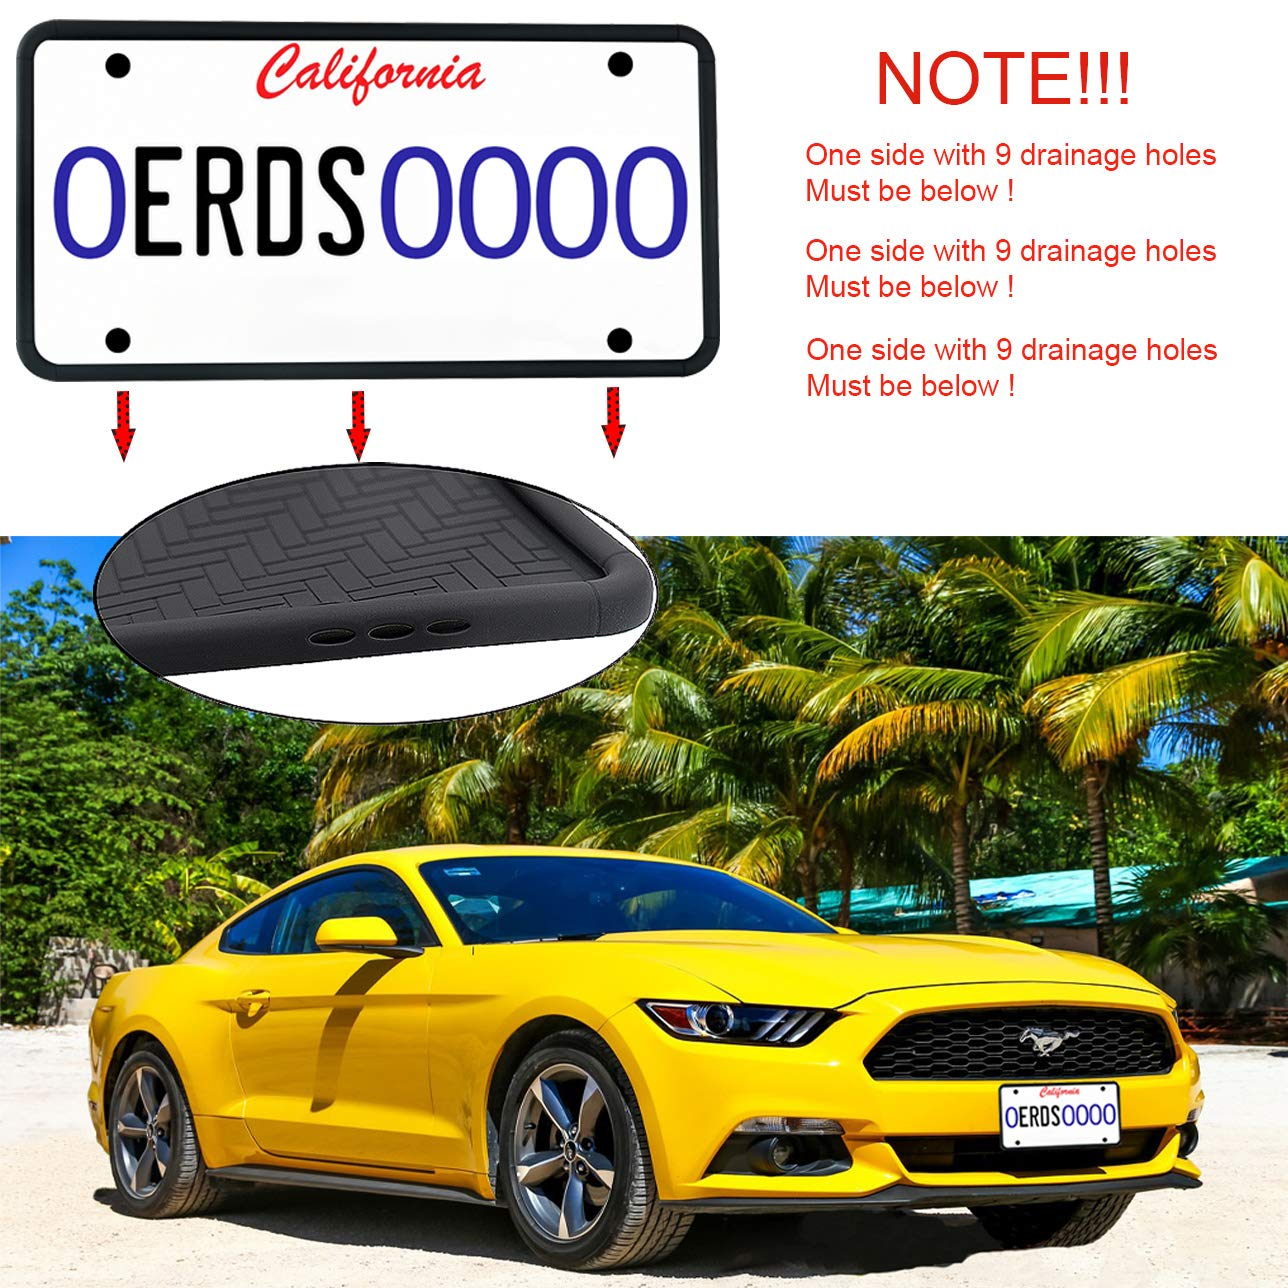 ZOORE 1PCS Premium Silicone License Plate Frames, Car Tag Holders with 9 Drainage Holes, Ideal Universal American Auto Licenses Plate Covers Holder Rust-Proof/Rattle-Proof/Weather-Proof Black